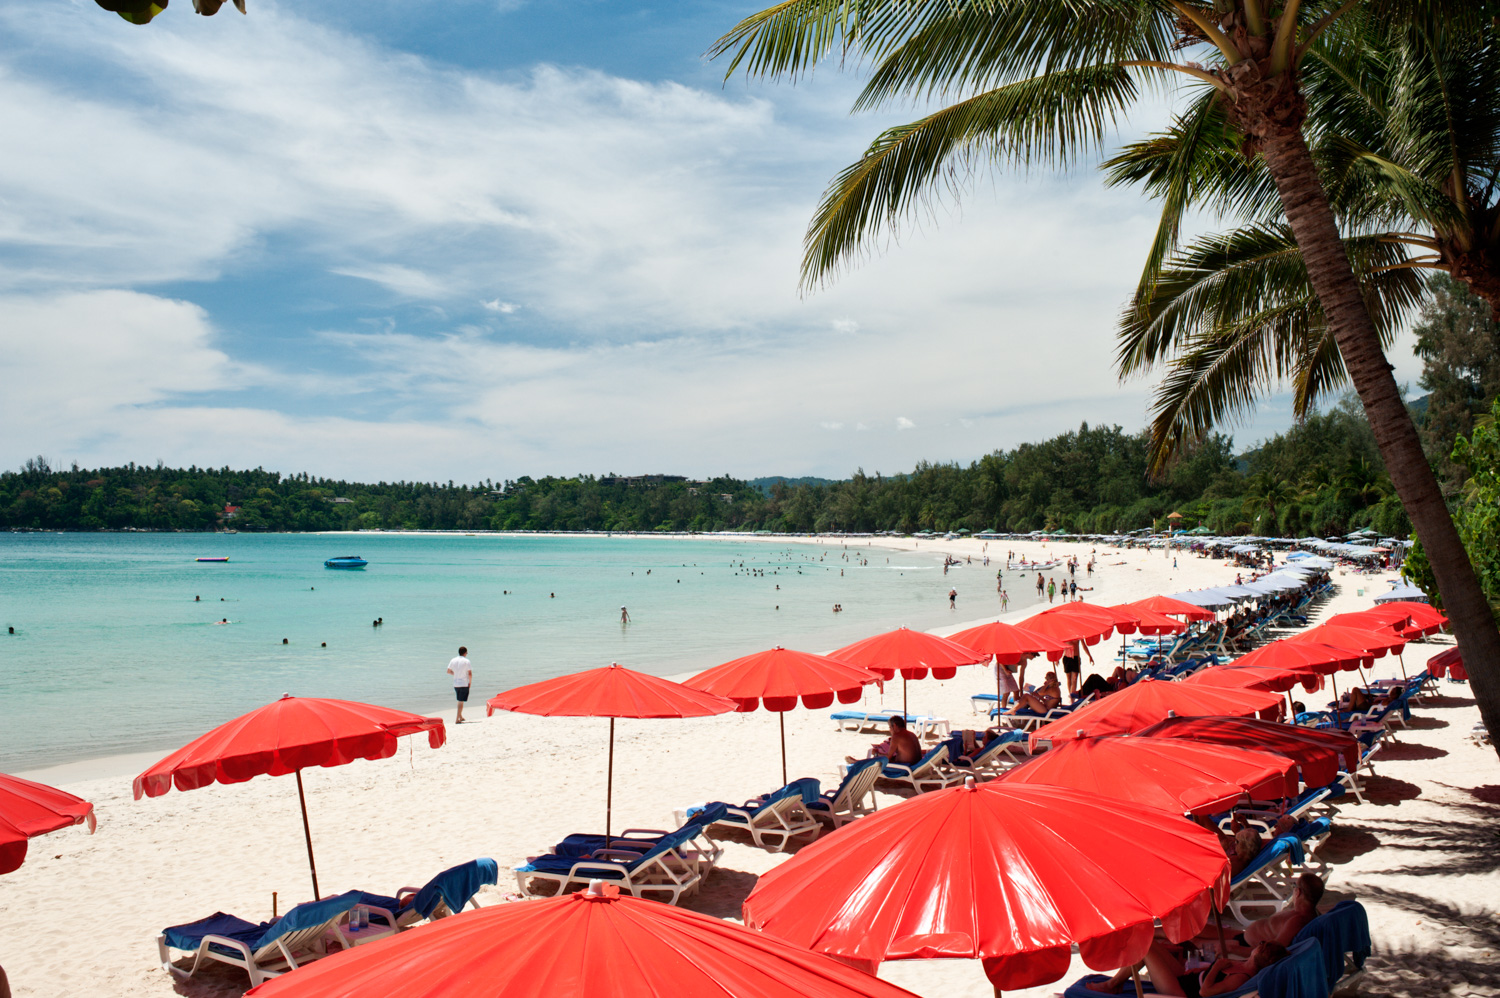 21 Tips For Stock Photography Red Umbrellas on a Tropical Island Beach